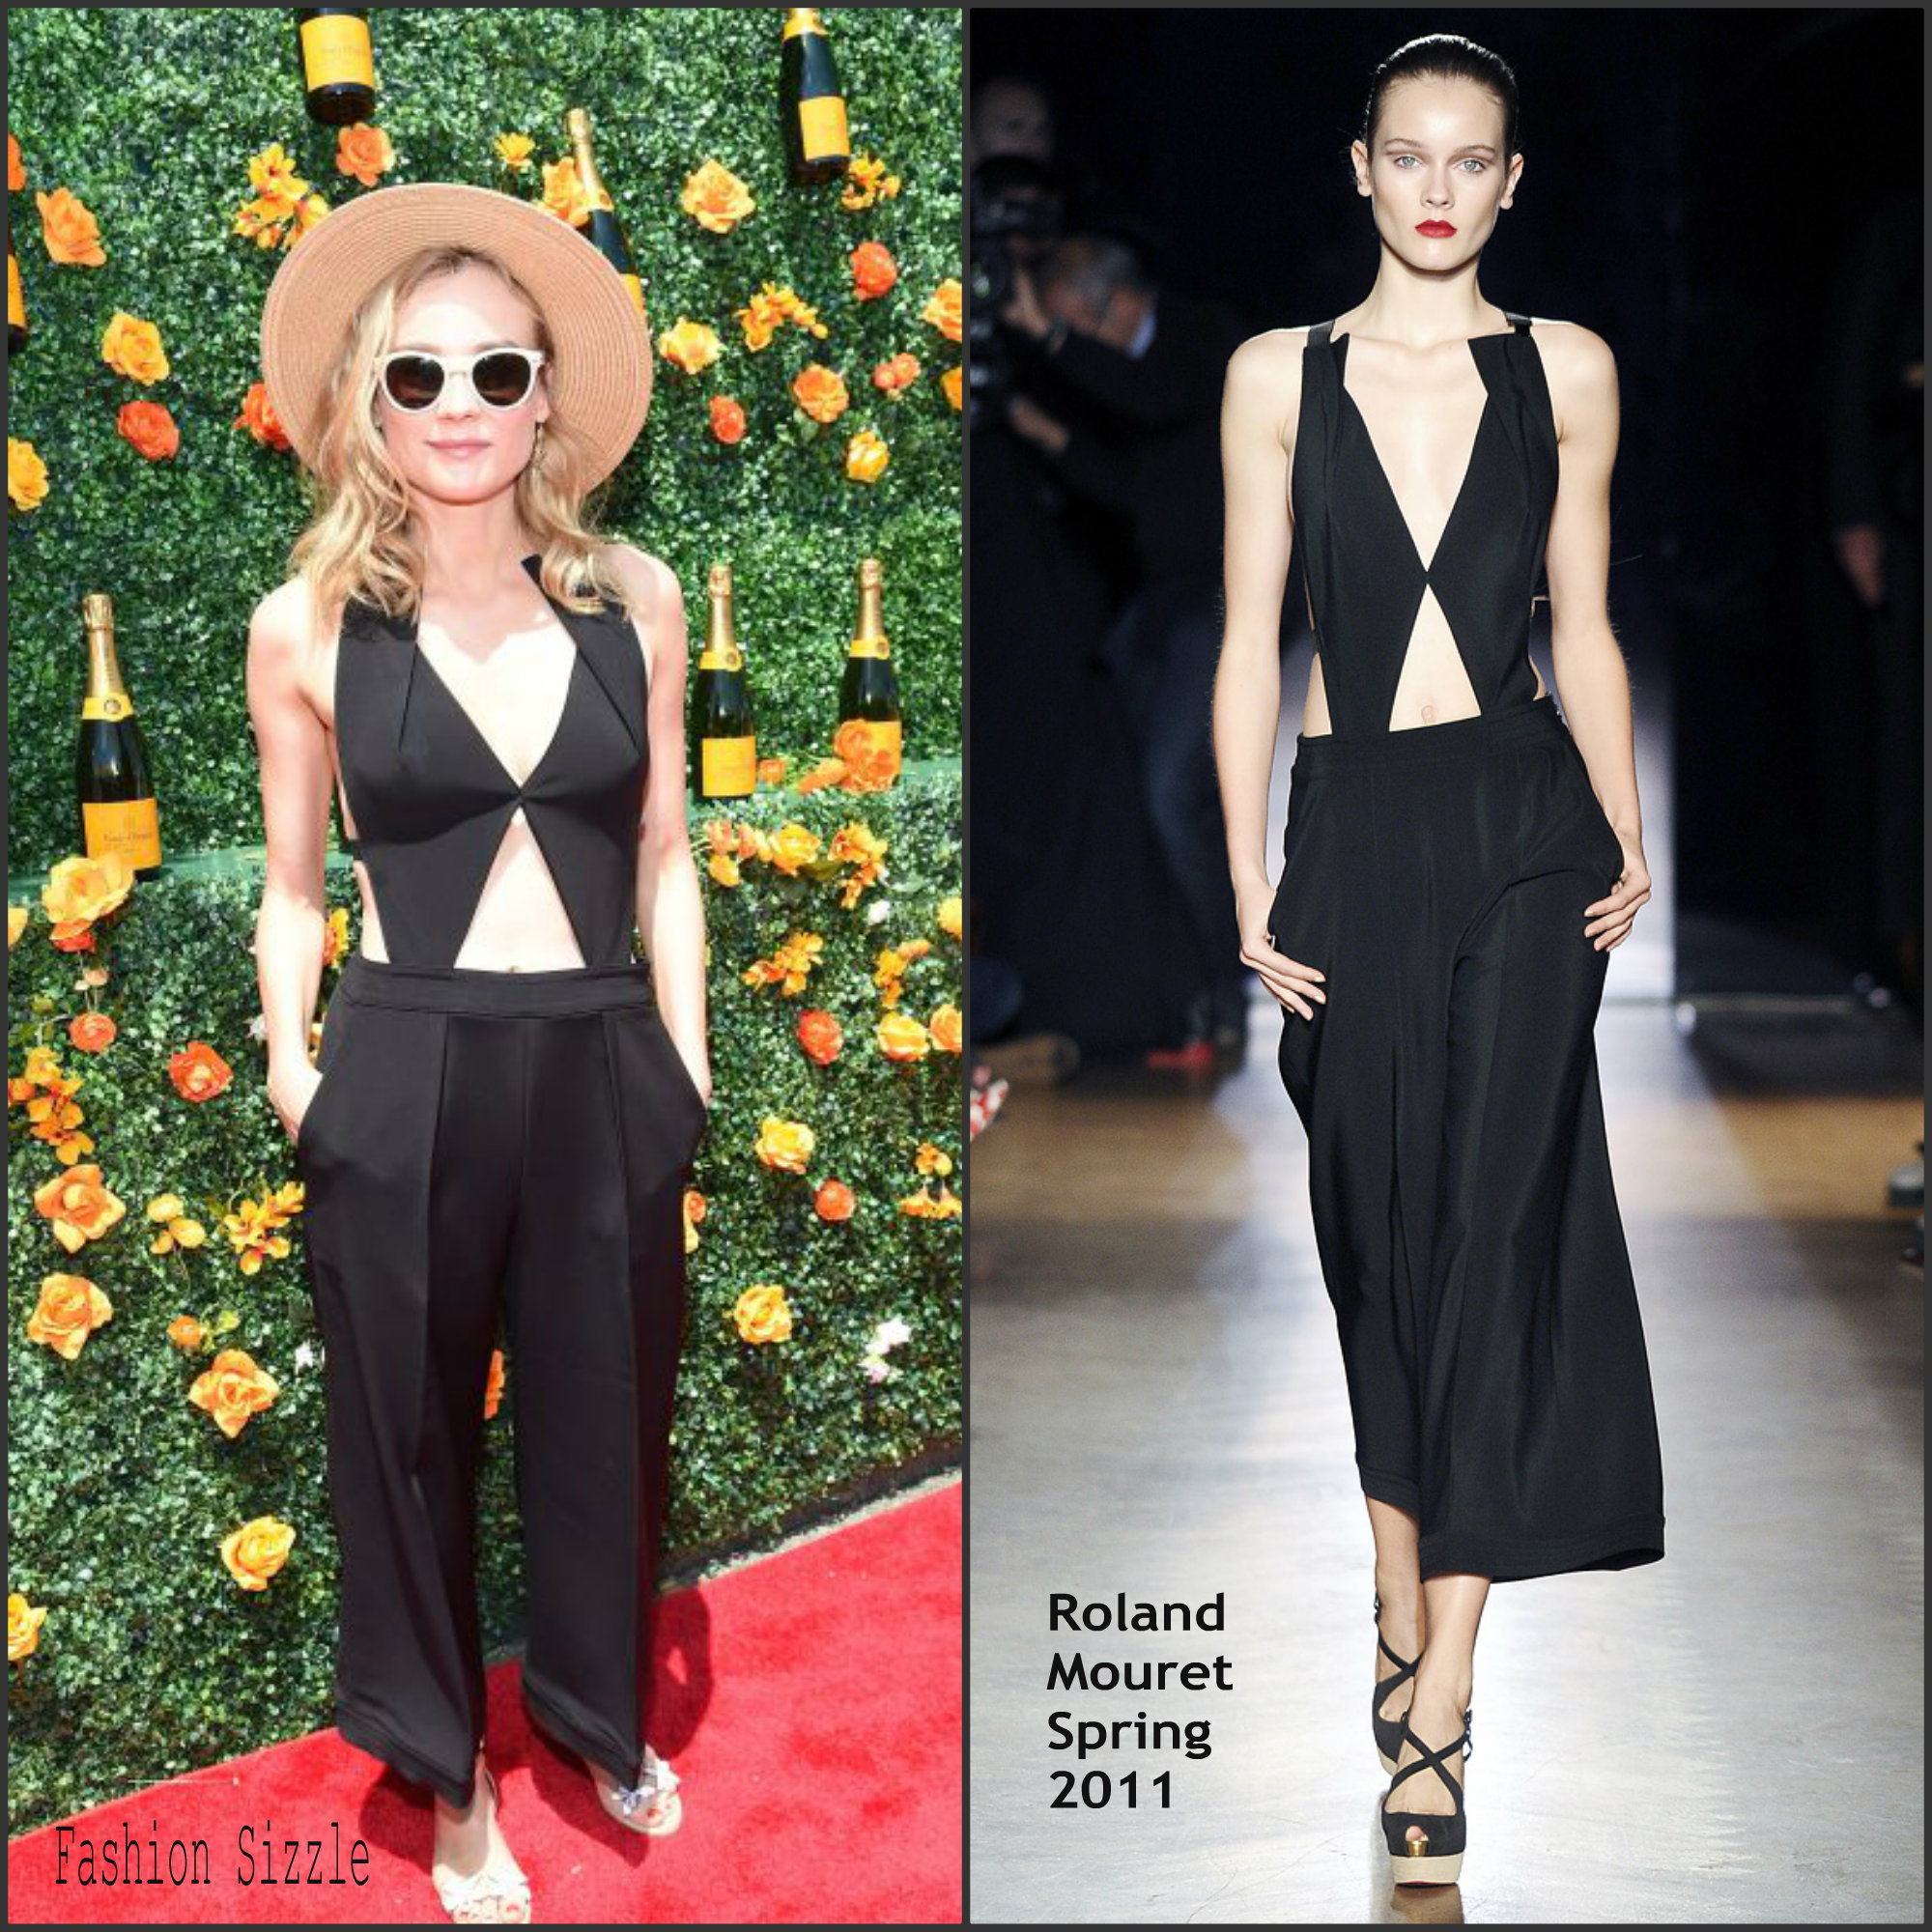 diane-kruger-in-roland-mouret-8th-annual-veuve-clicquot-polo-classic